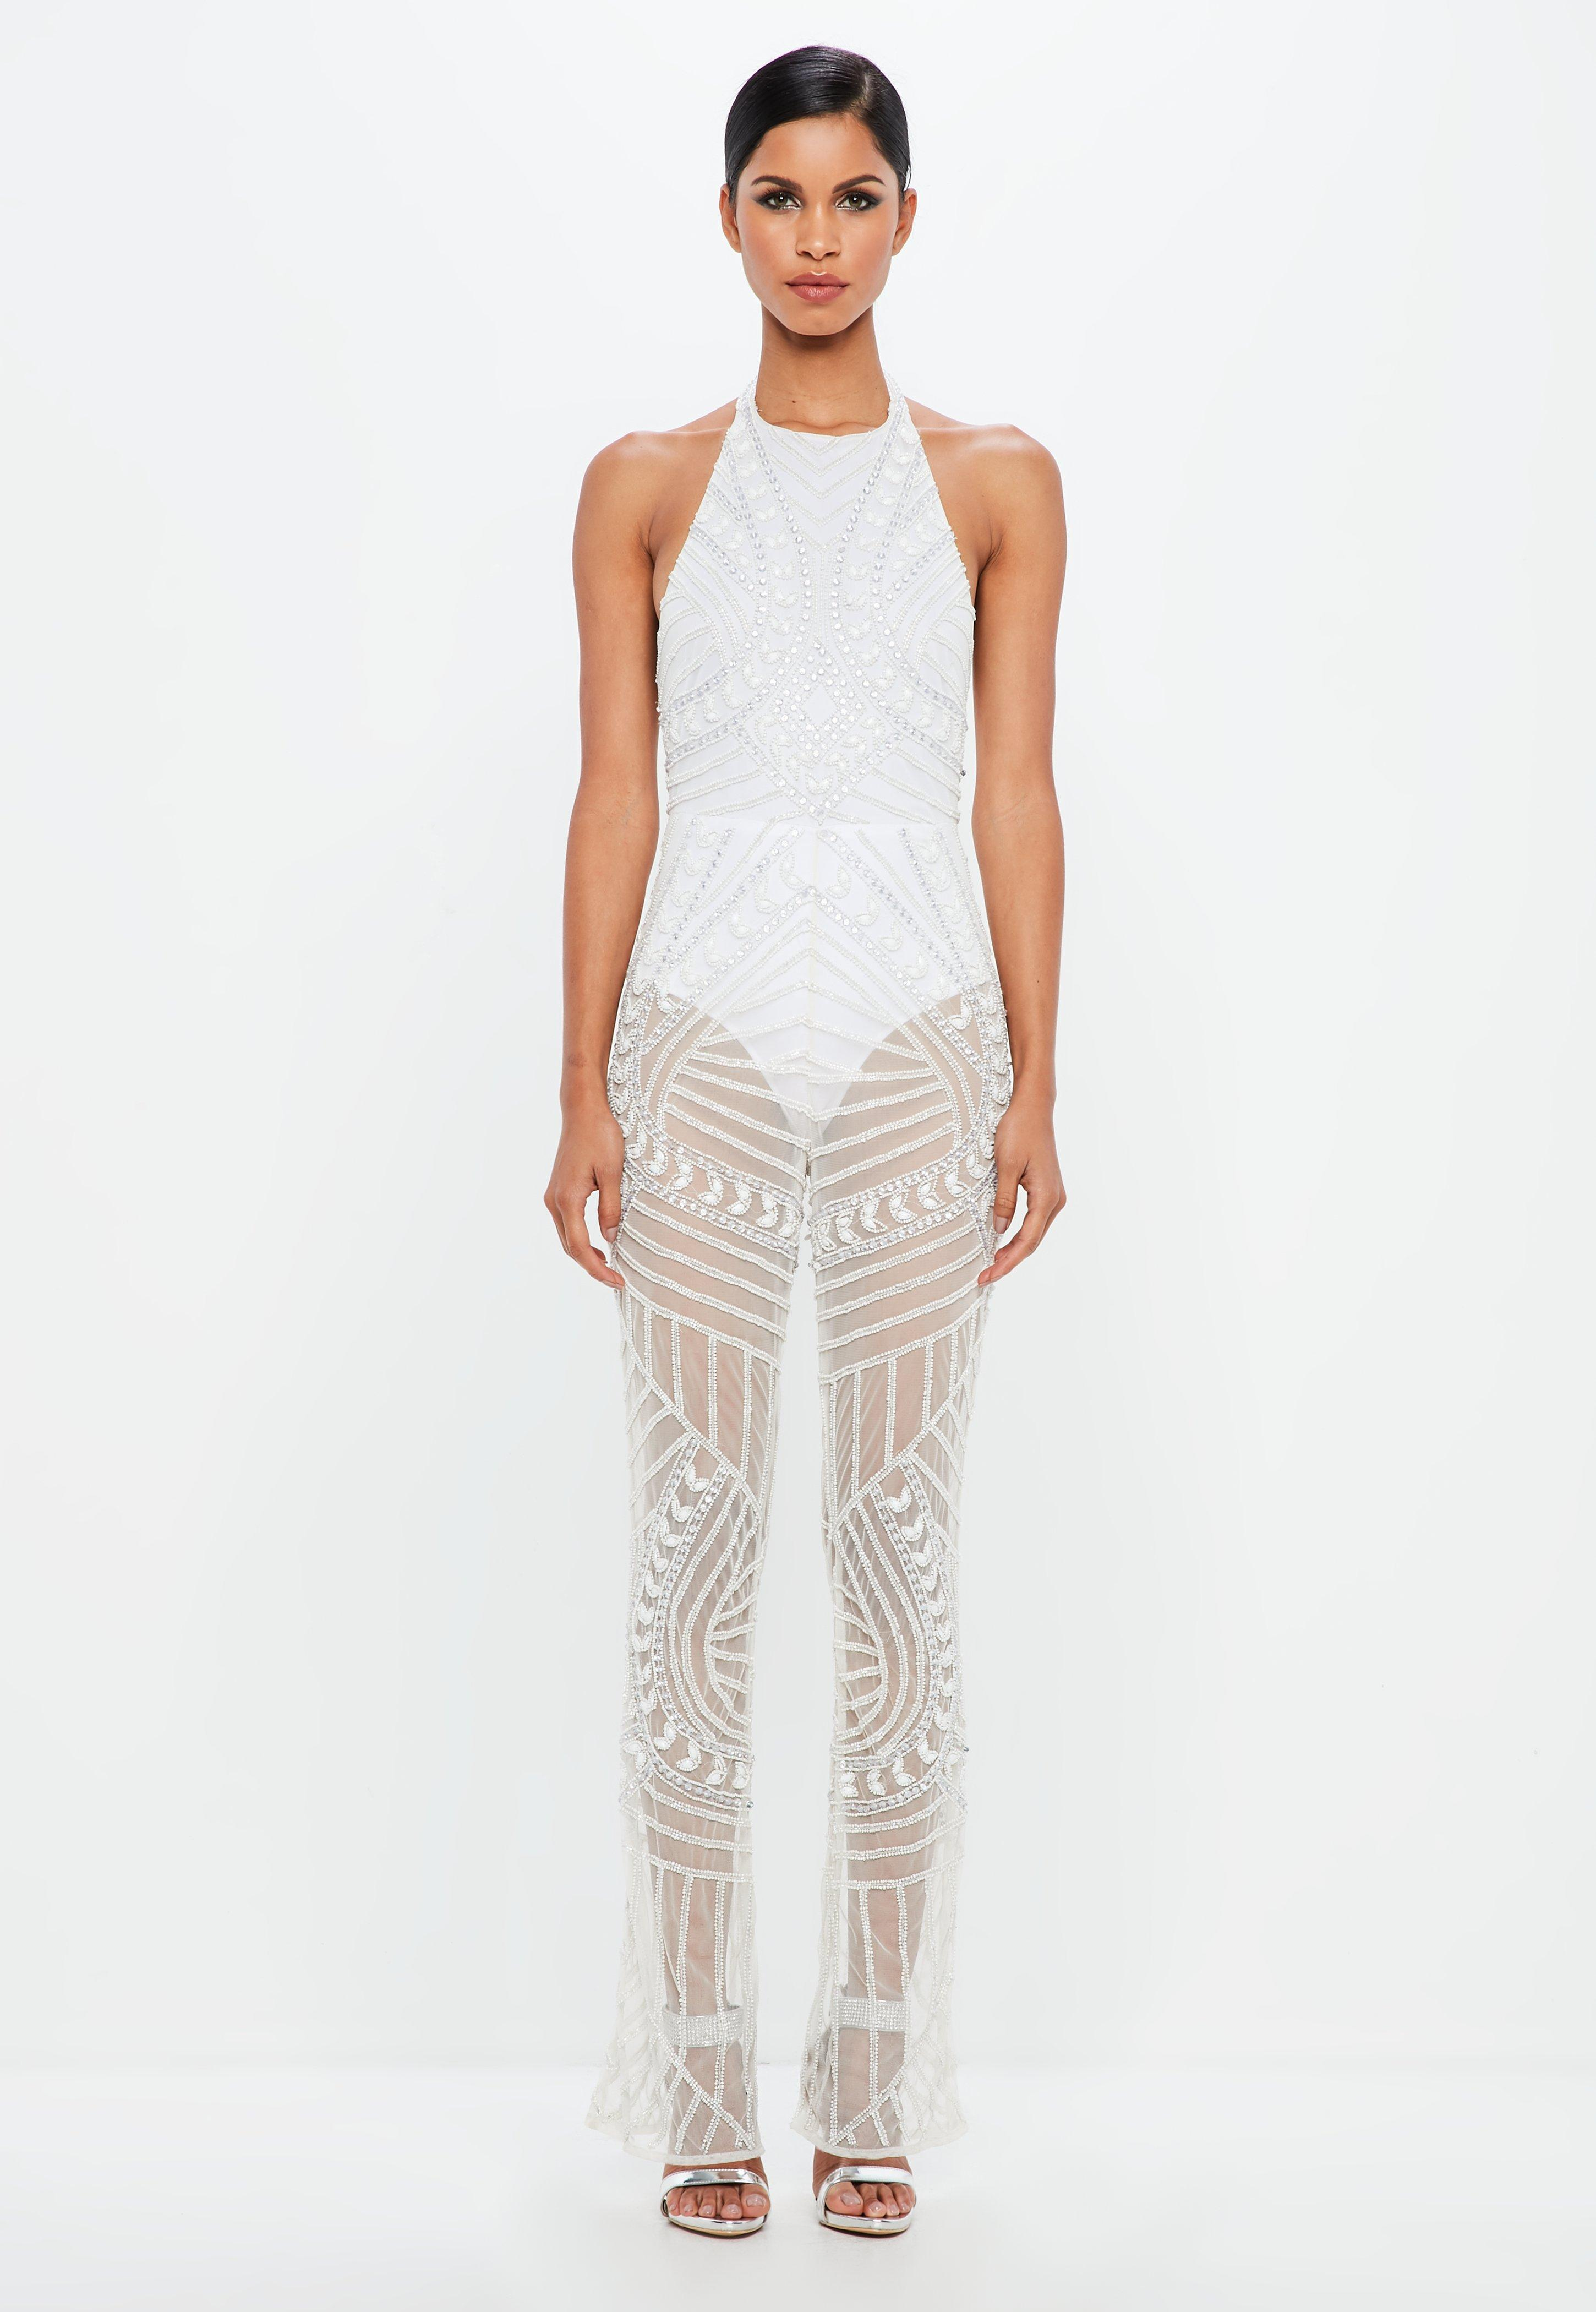 9632c5b4a5a6 Lyst - Missguided Peace + Love White Halterneck Embellished Jumpsuit ...